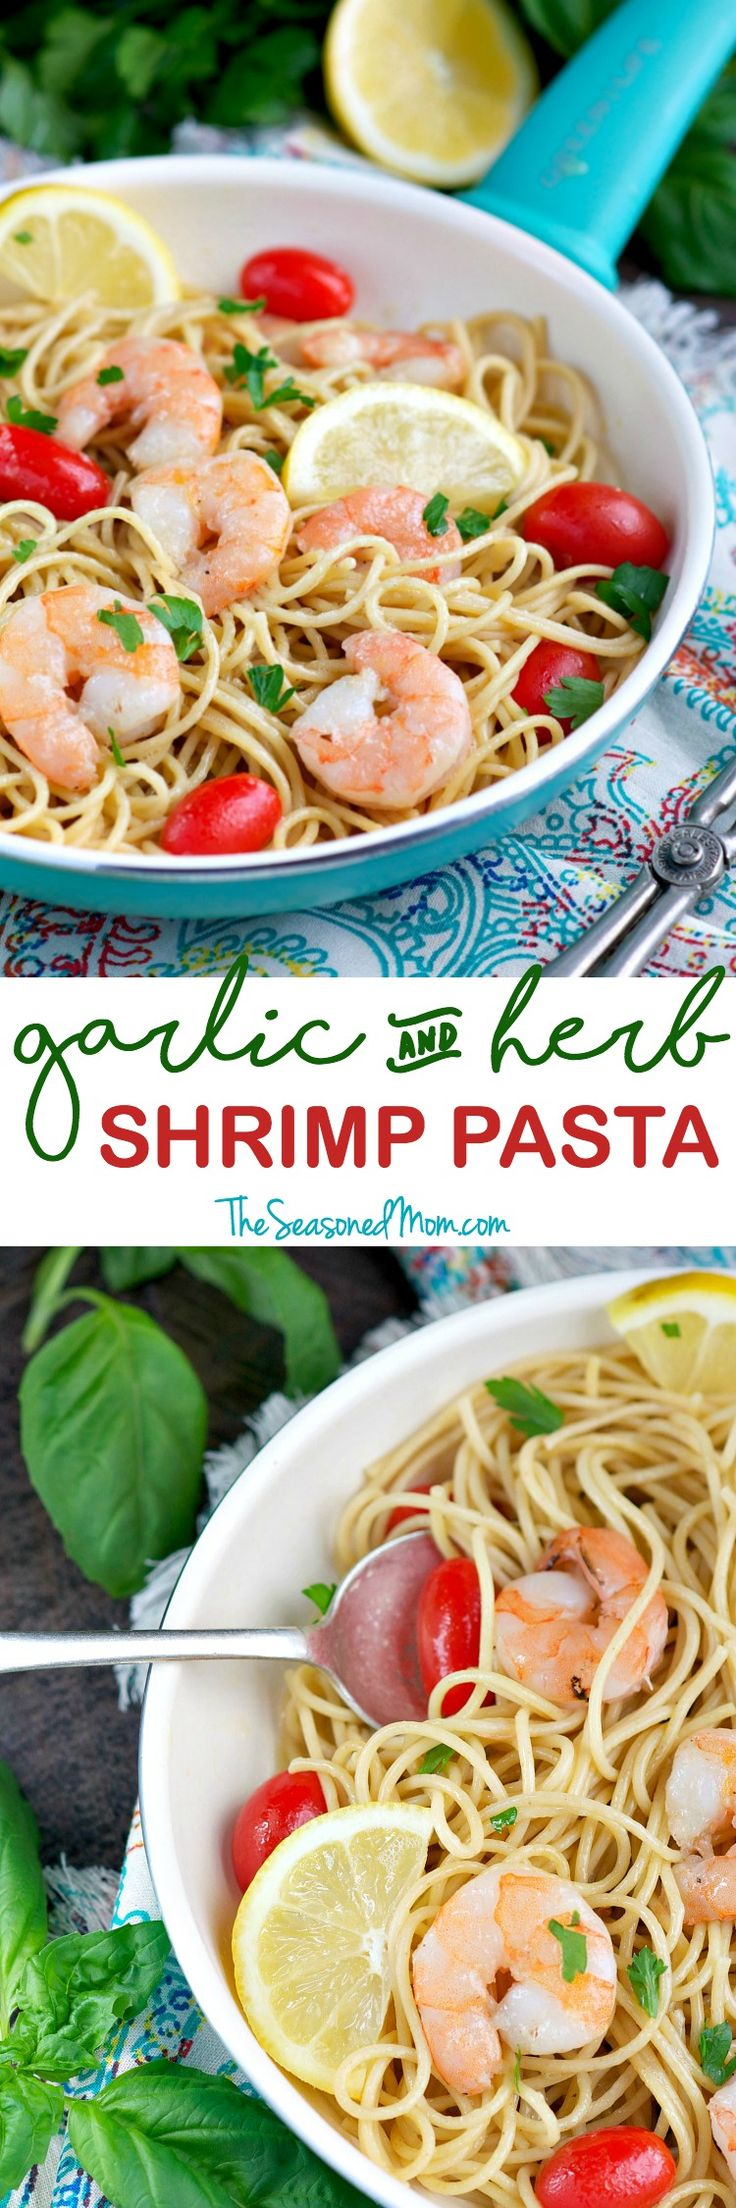 This easy Garlic and Herb Shrimp Pasta is full of fresh and real food ...